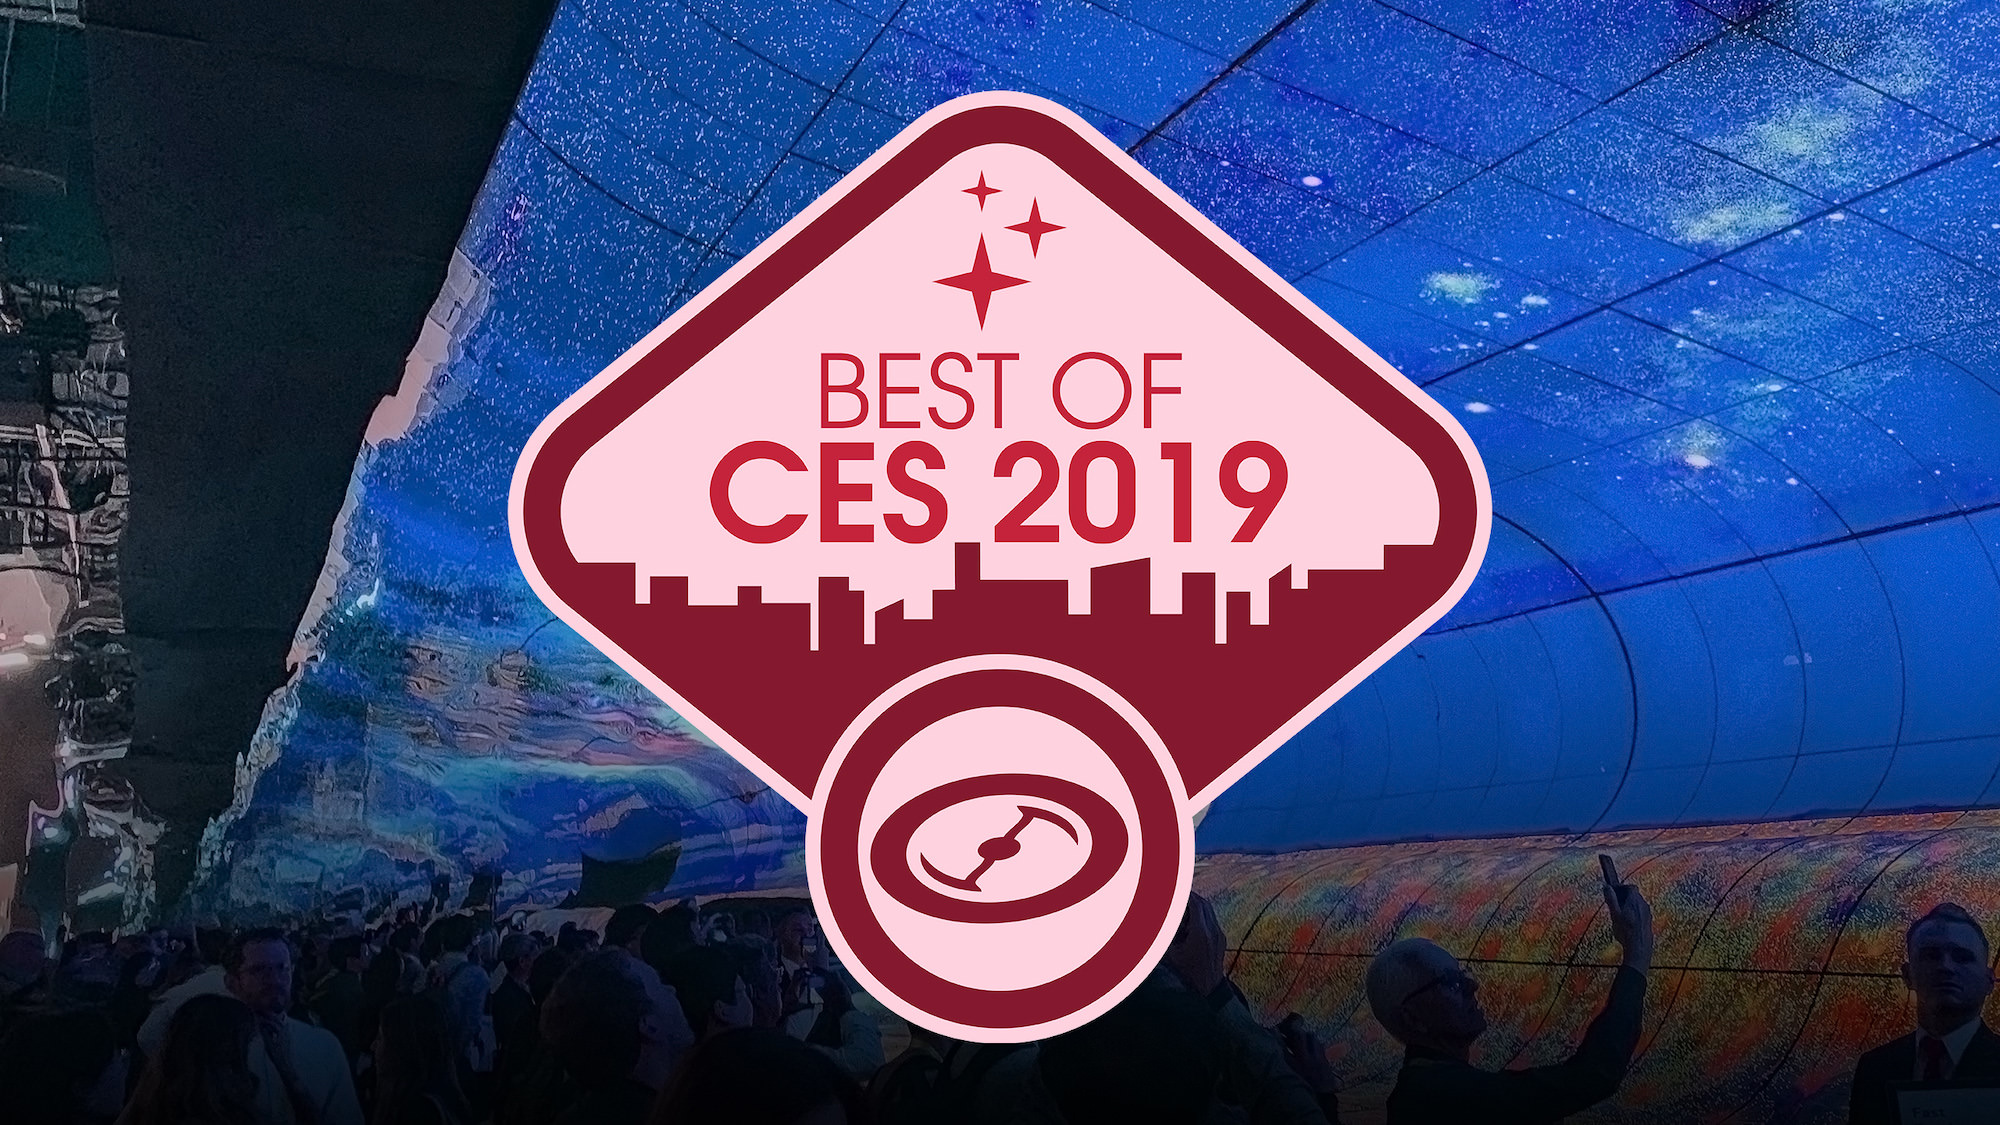 Best of CES 2019 Awards: DJI Smart Controller, Draco 4x4...